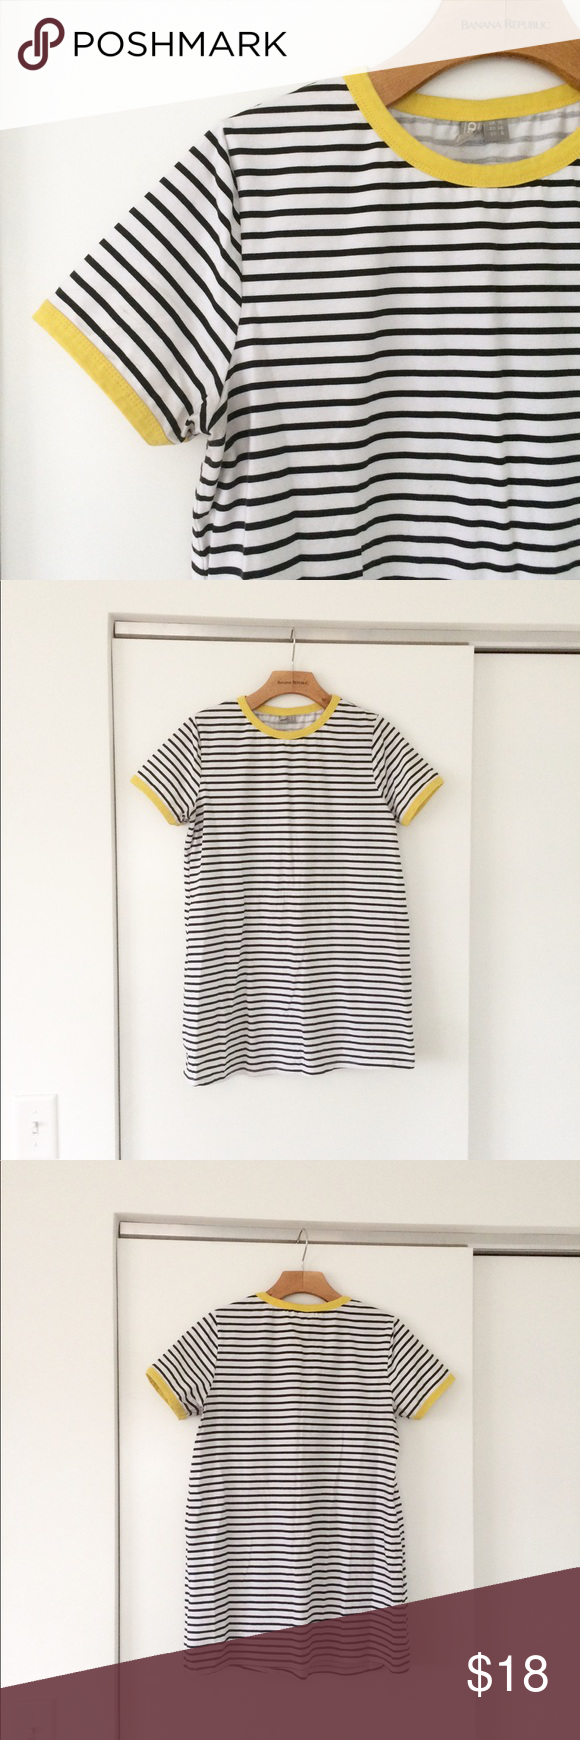 22103c6948 ASOS Black White Yellow Stripe Ringer Tee Shirt 6 Light wear w some minor  discoloration, good condition, looks great! See all pics ASOS Tops Tees -  Short ...